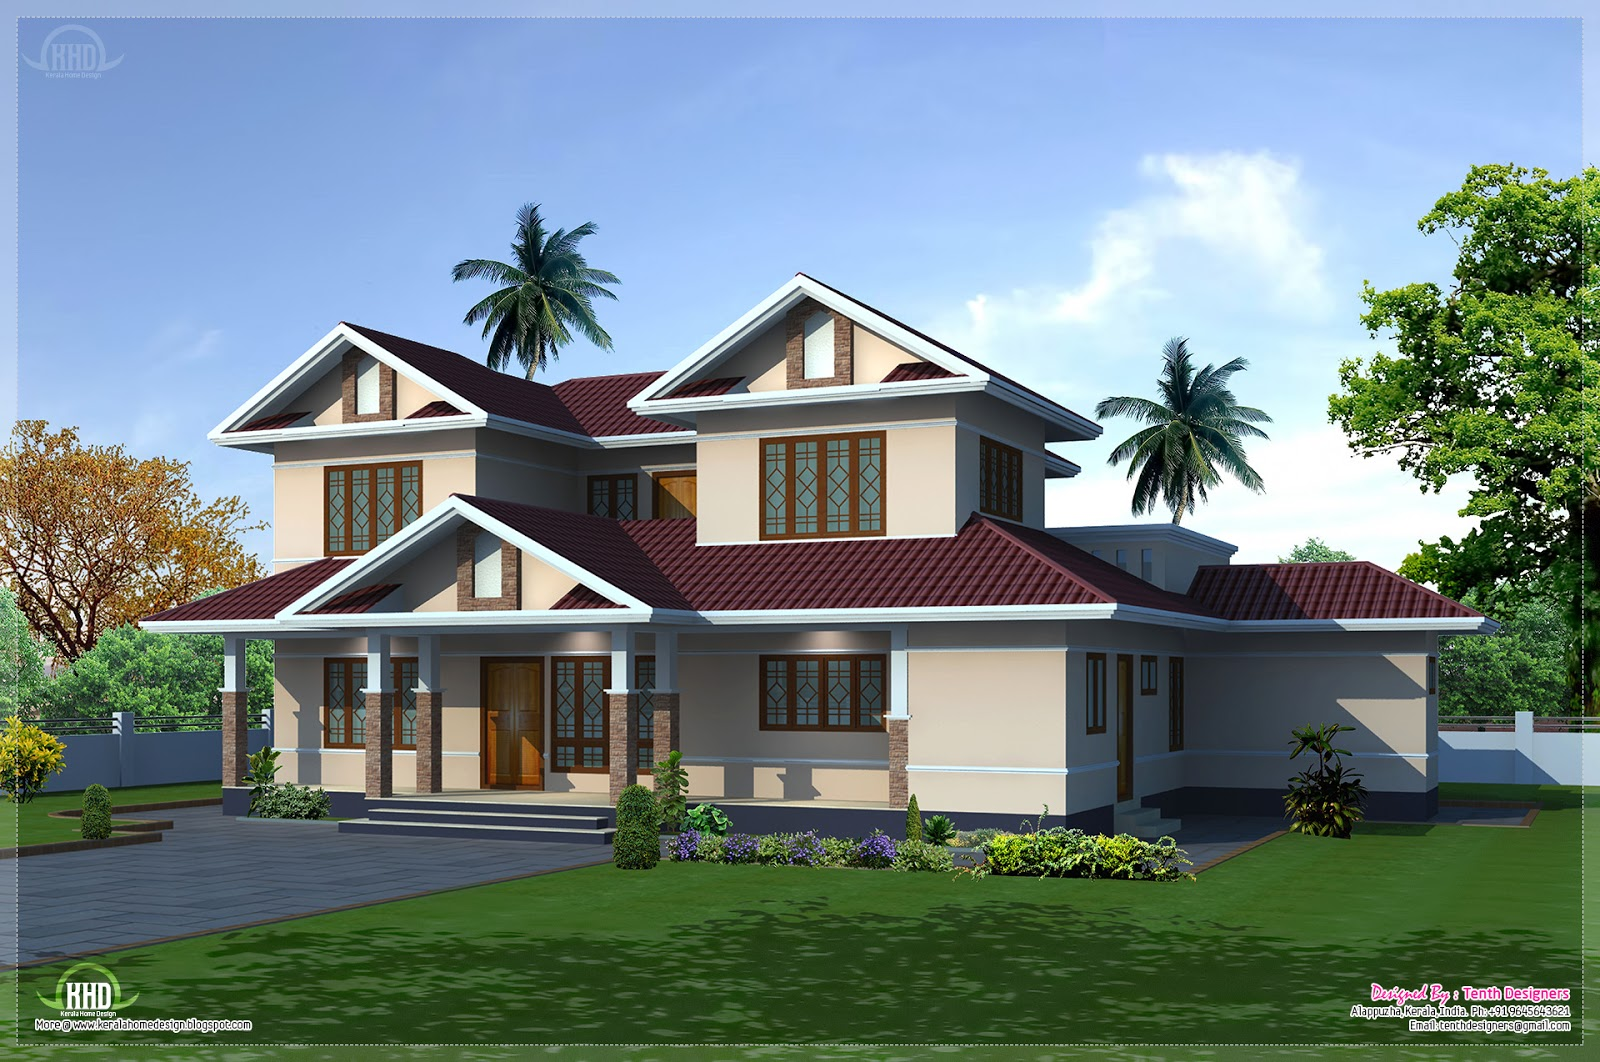 Exterior traditional house plans exterior house designs for Home designs traditional